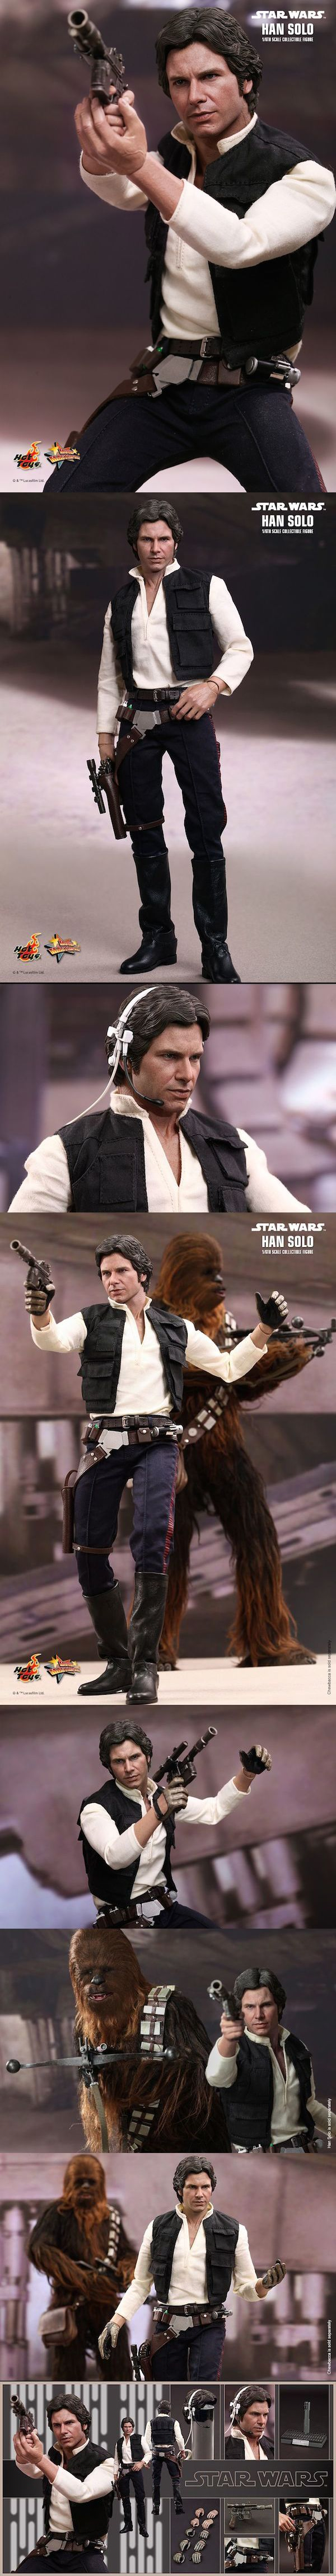 The New Hot Toys Star Wars Han Solo  Figure is Simply Incredible  Read more at http://nerdapproved.com/approved-products/the-new-hot-toys-star-wars-han-solo-and-chewbacca-figures-are-simply-incredible/#T0IVBoJGx8vkc7Ws.99